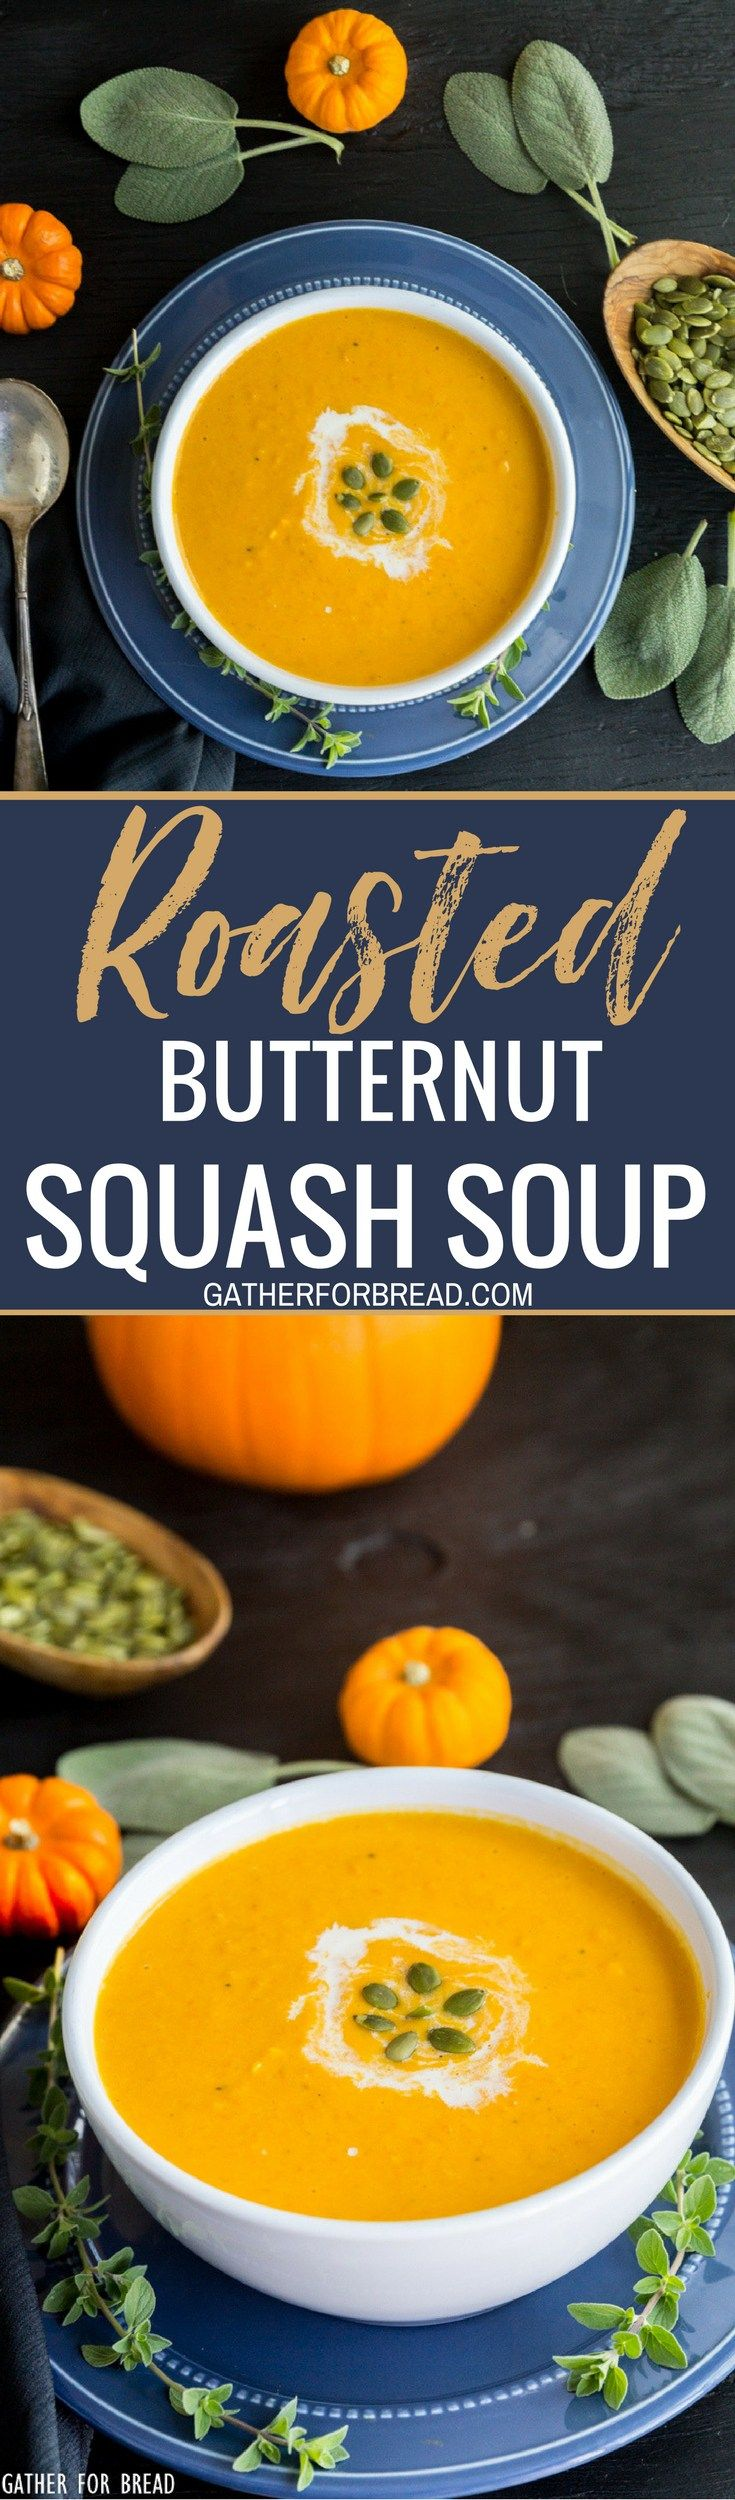 Roasted Butternut Squash Soup - Recipe for the best butternut squash soup winter. So easy and creamy. Perfect for autumn lunch or a side dish for dinner.